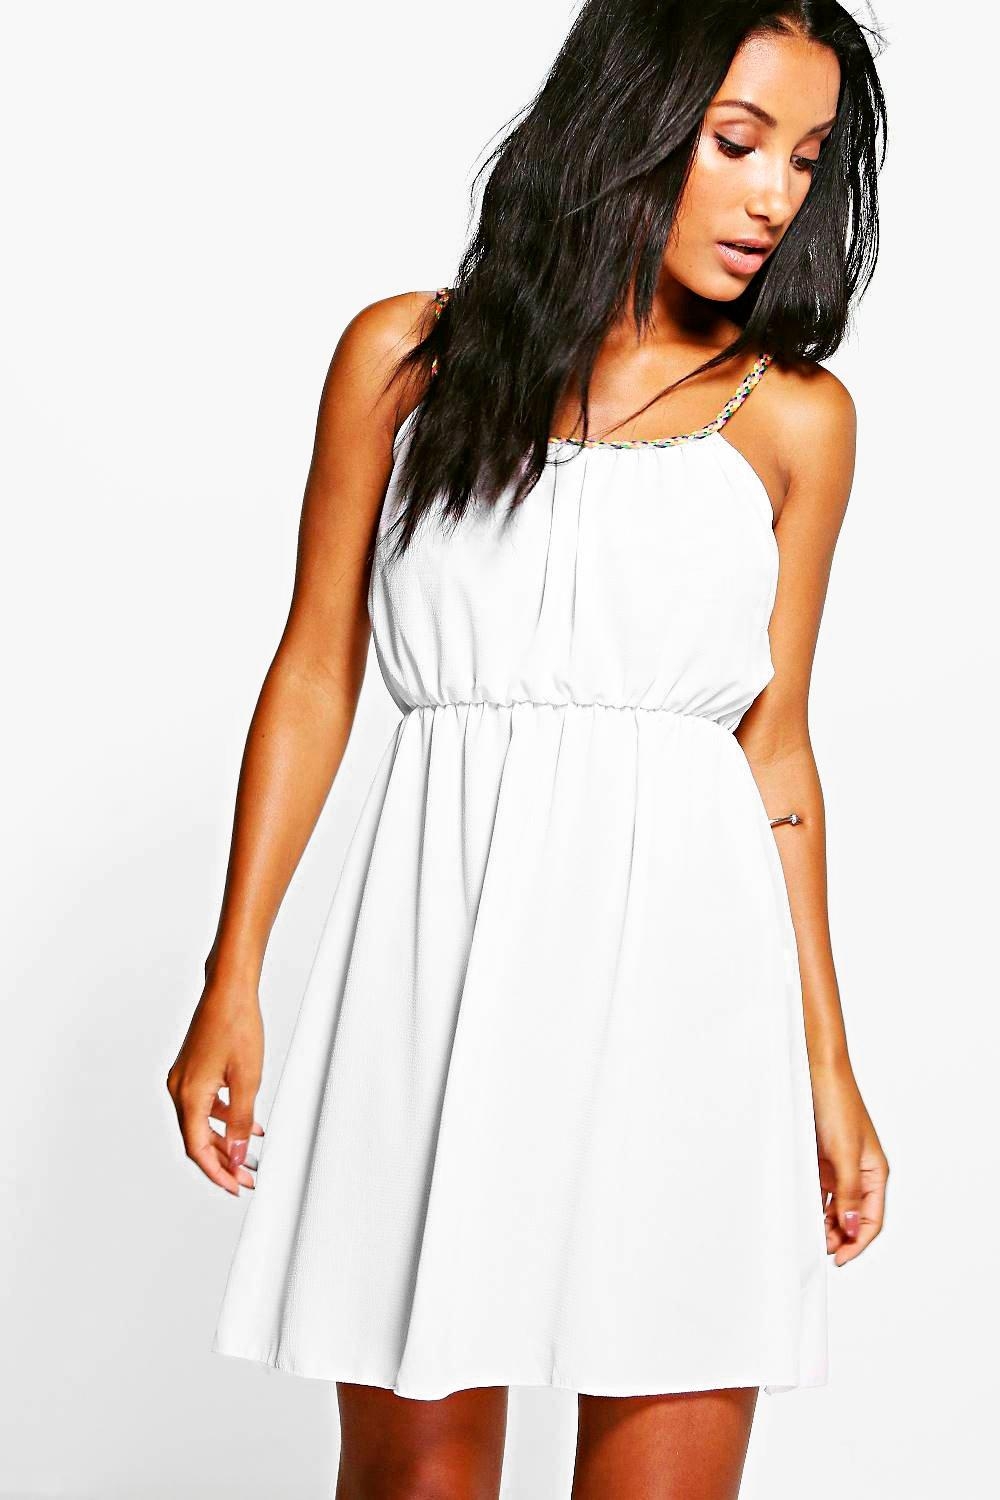 Florence Plait Strap Beach Cover Dress